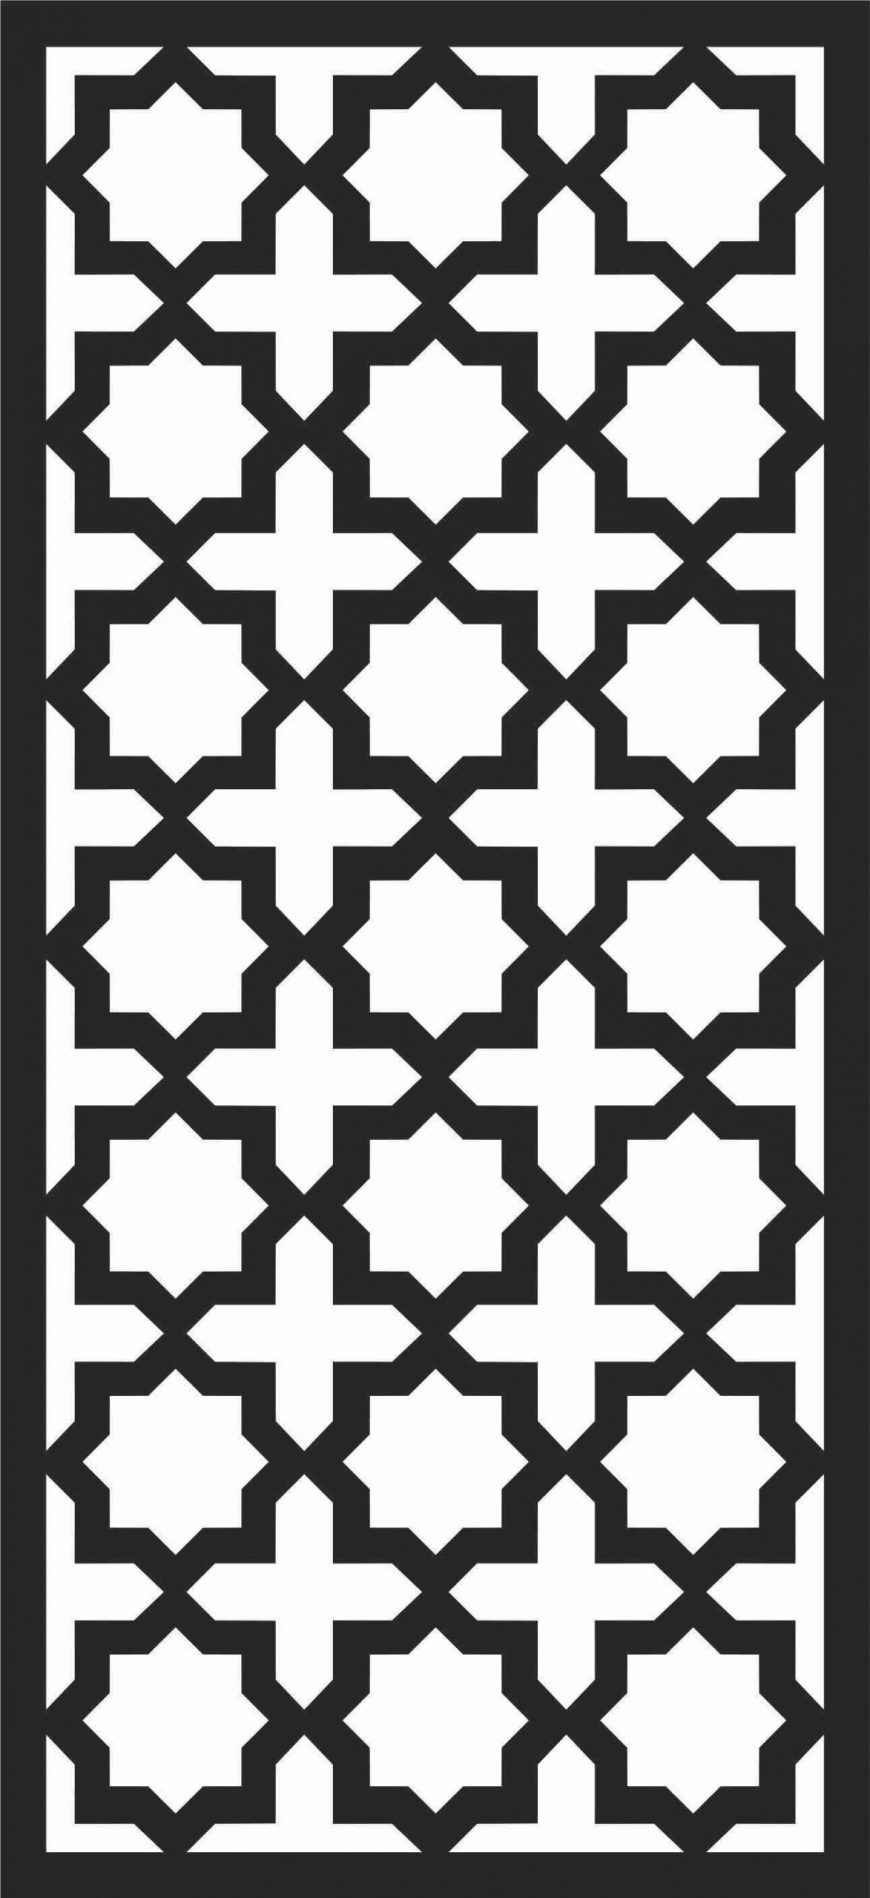 Floral Screen Patterns Design 21 Free DXF File